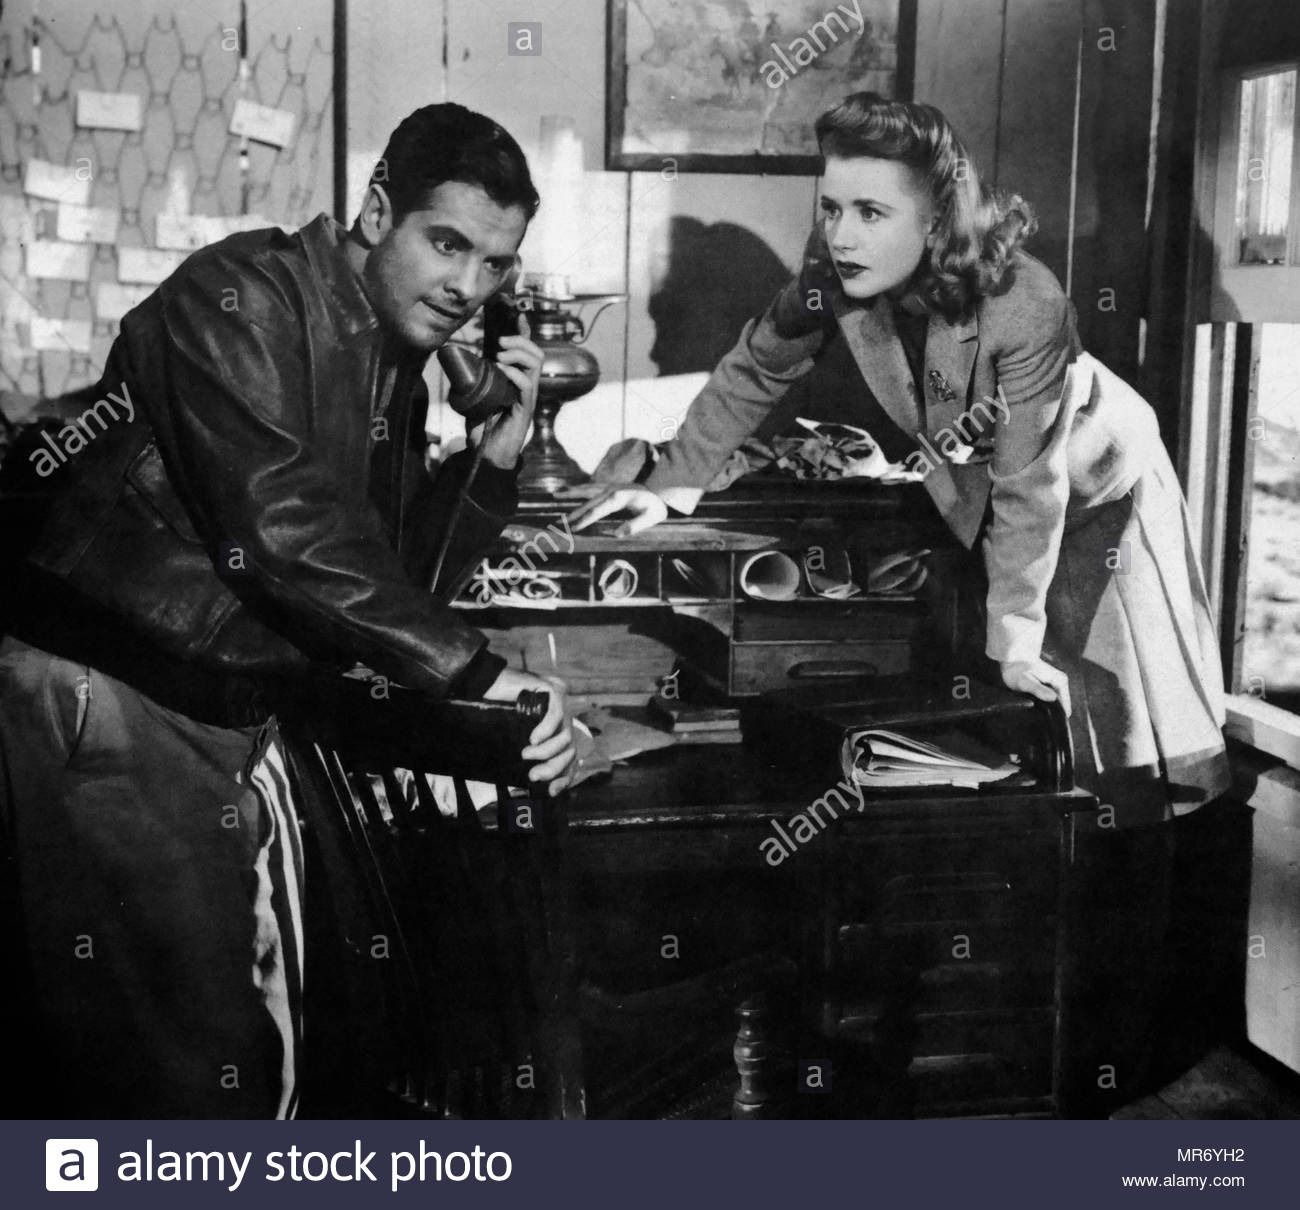 Saboteur is a 1942 American film noir spy thriller film directed by Alfred Hitchcock with a screenplay written by Peter Viertel, Joan Harrison and Dorothy Parker. The film stars Priscilla Lane, and Robert Cummings - Stock Image